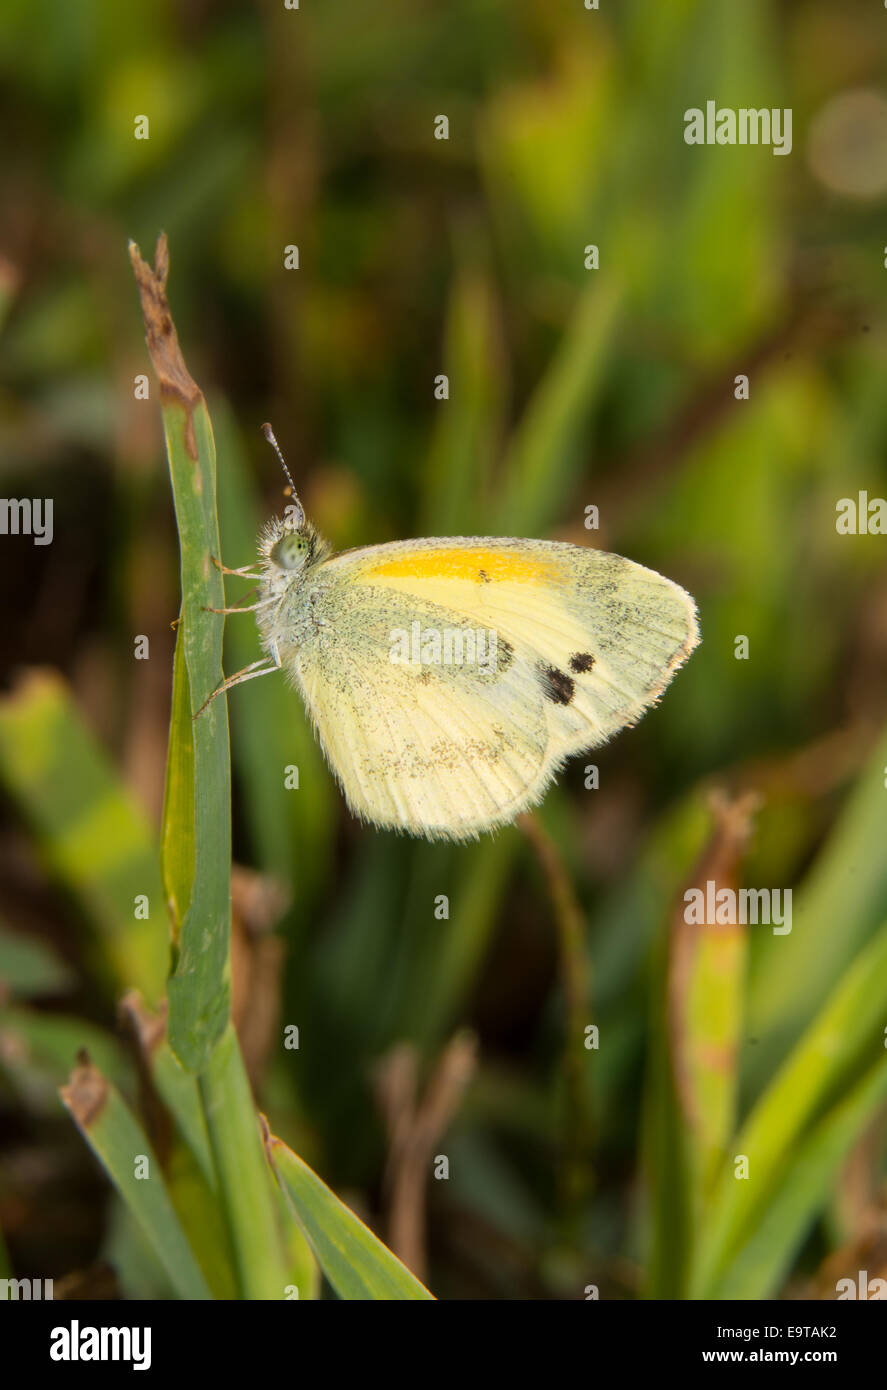 Tiny Dainty Sulphur butterfly, Nathalis iole, resting on a blade of grass in sunshine - Stock Image